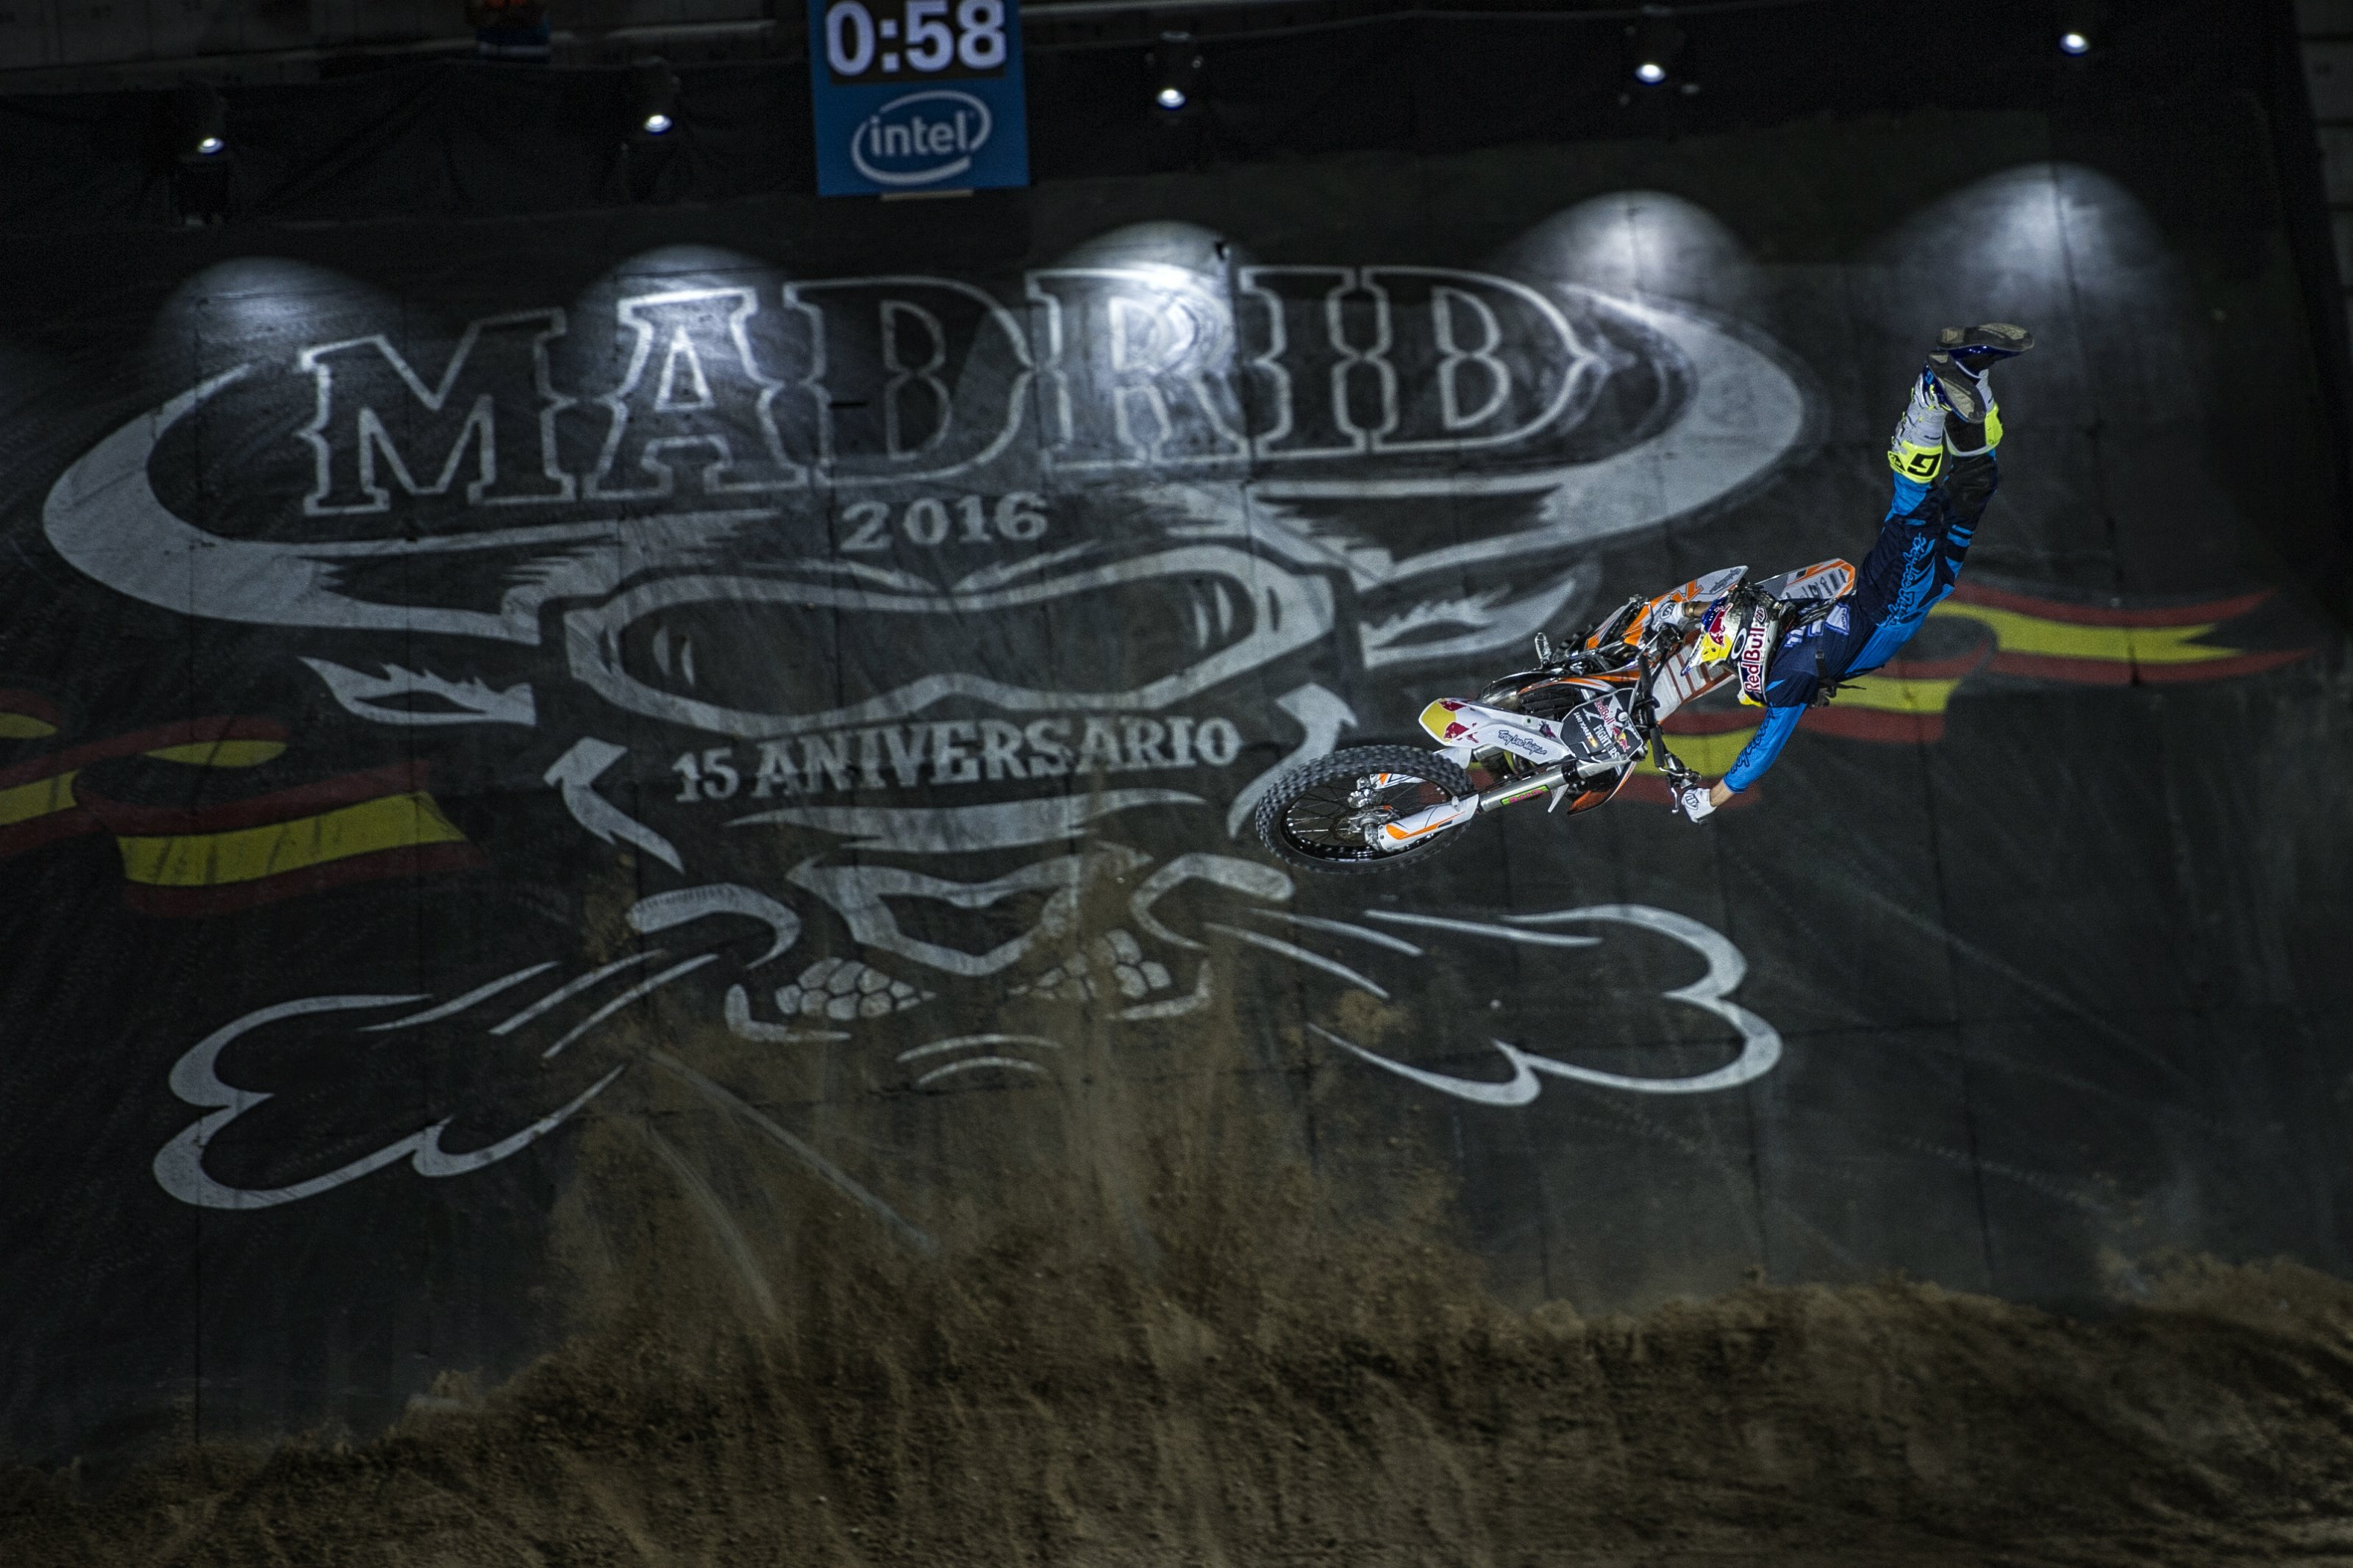 Dany Torres of Spain performs during the qualifying of the Red Bull X-Fighters at the Plaza de Toros de Las Ventas in Madrid, Spain on June 23, 2016.